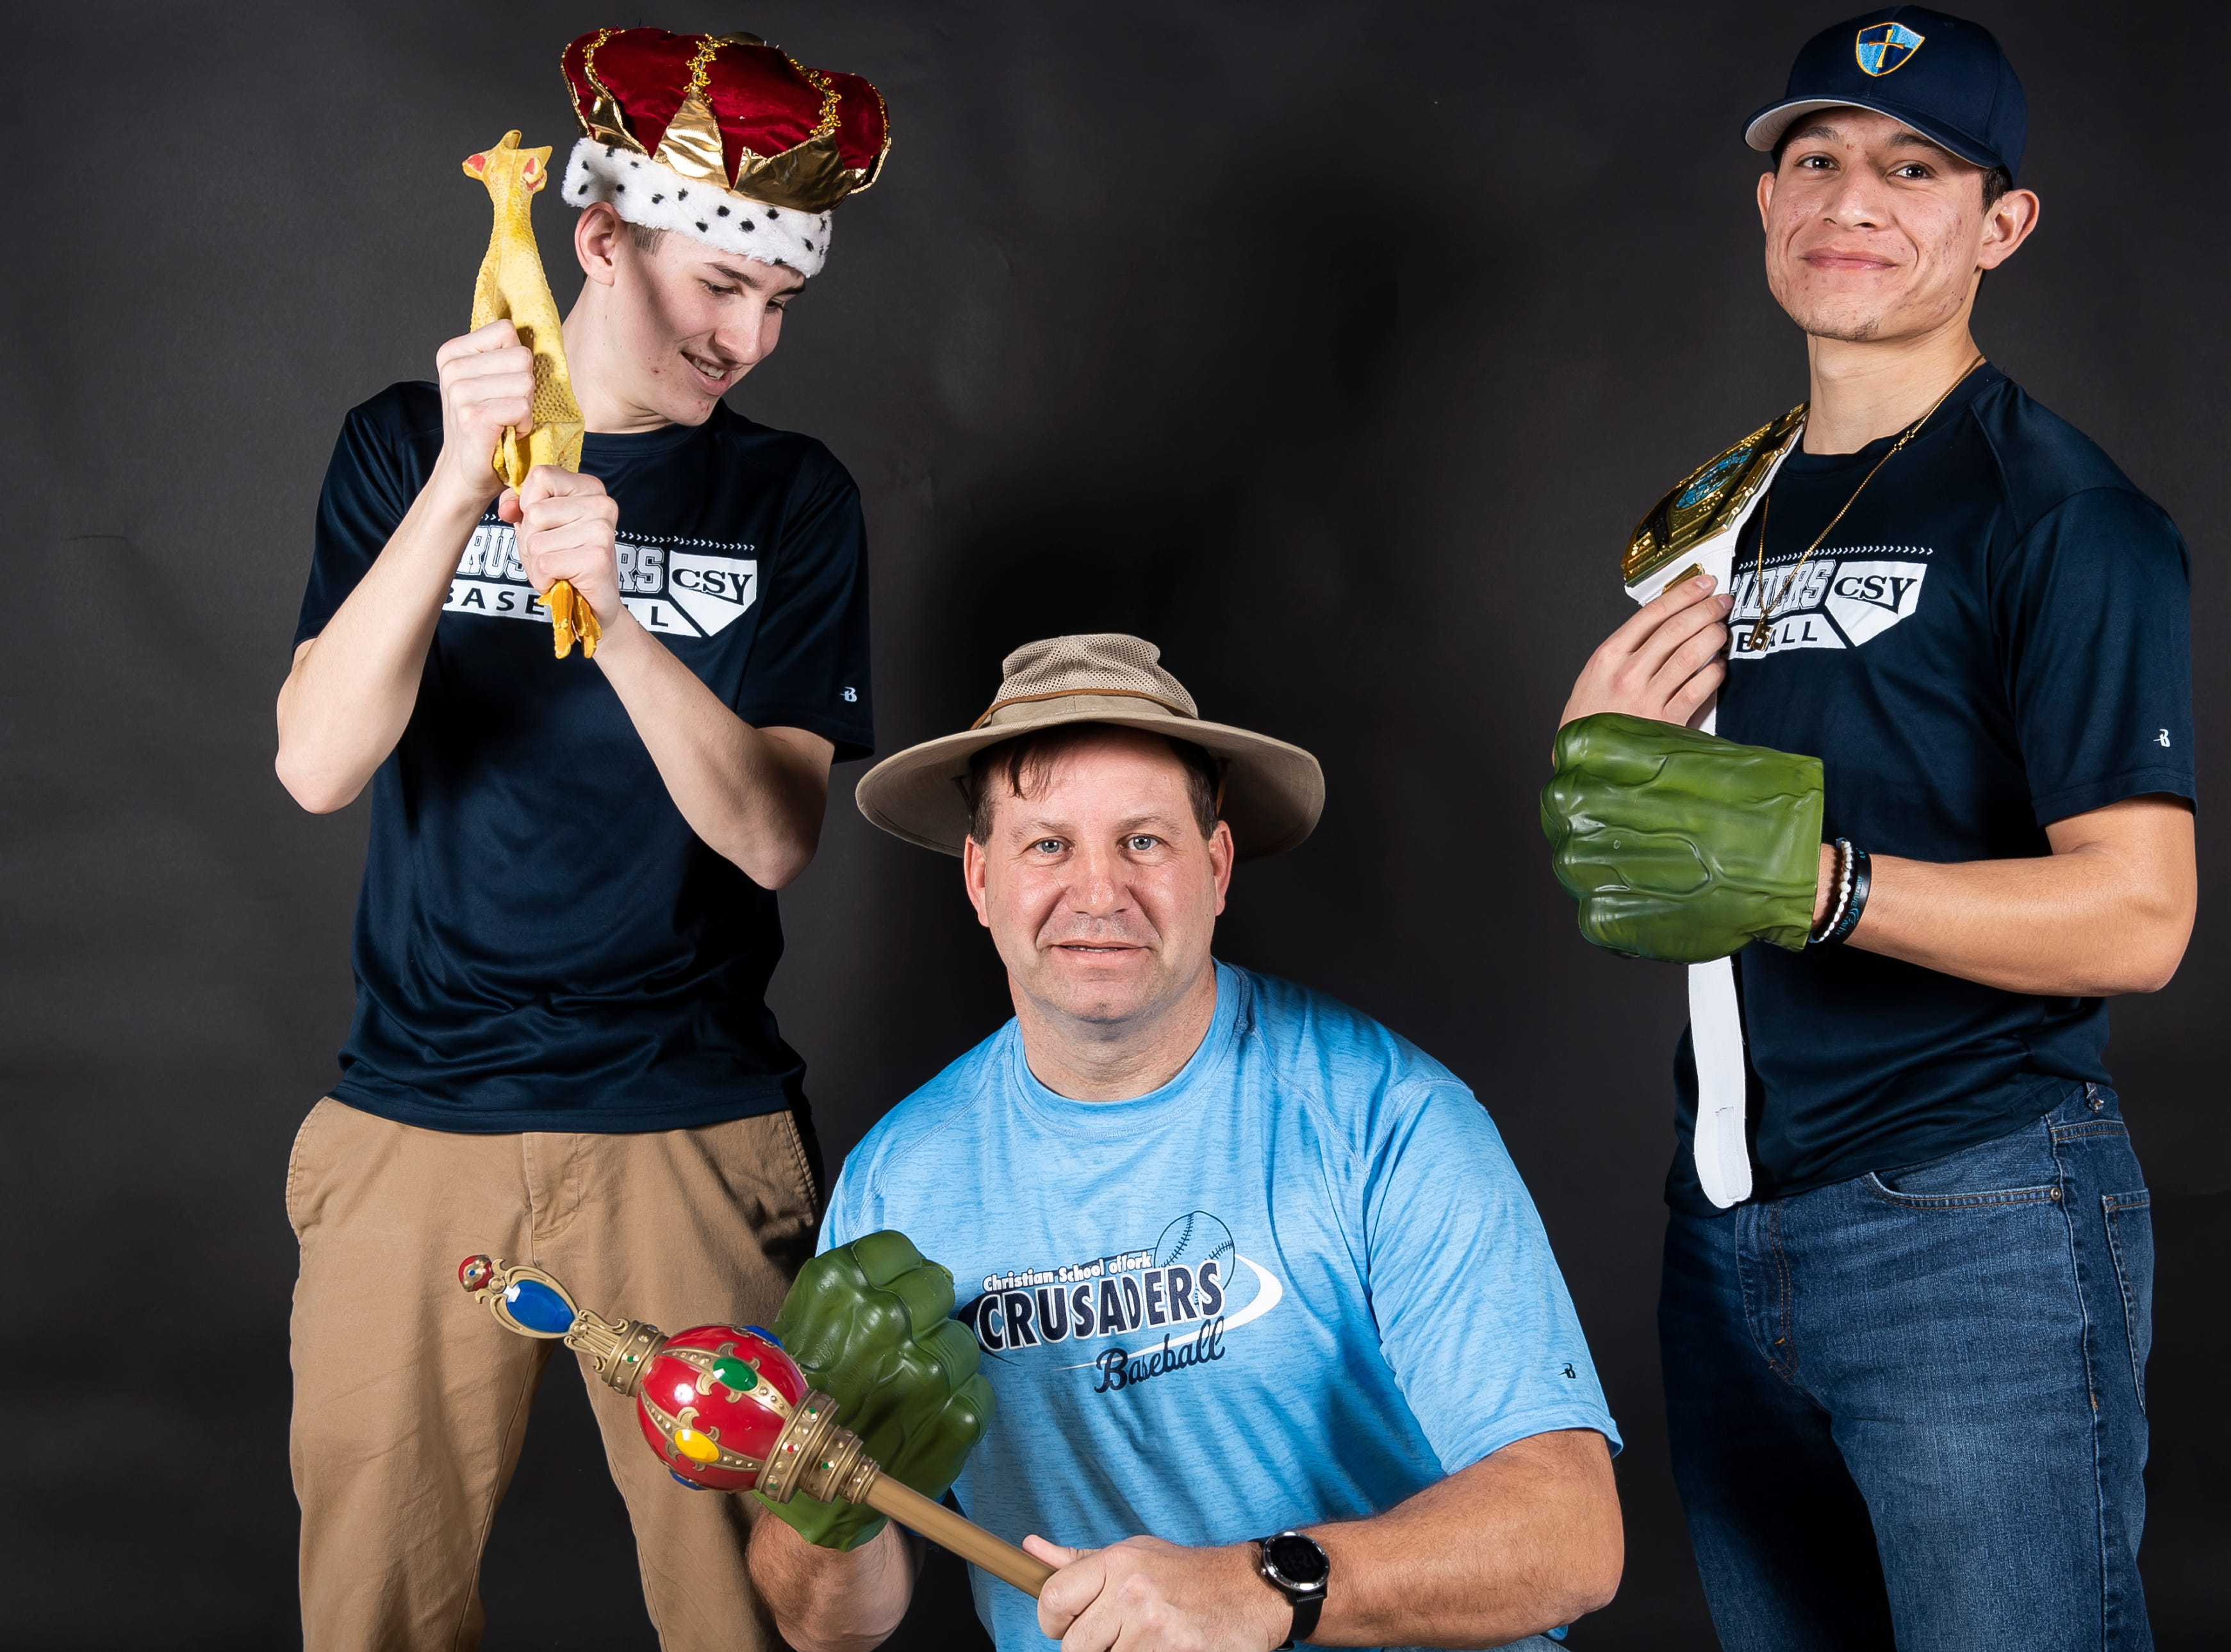 (From left) Christian School of York baseball's Lane Ferrence, coach Ed Bills and Neco Velasco strike a pose in the GameTimePA photo booth during spring sports media day in York Sunday, March 10, 2019.